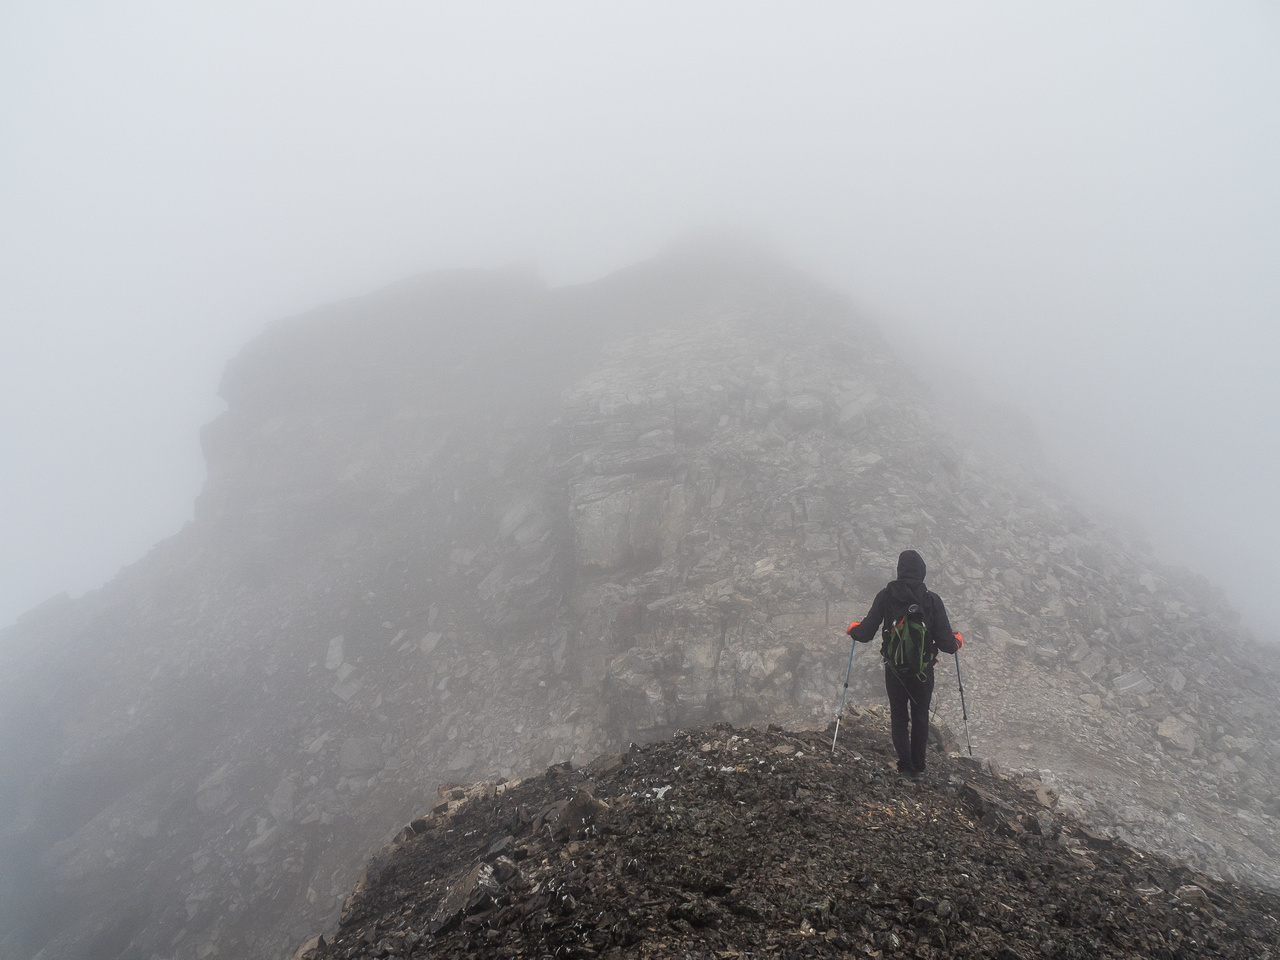 Traversing from the first false summit to what we thought was the true summit block. The true summit requires dropping down a bit to the right here and going just a bit further before ascending back l